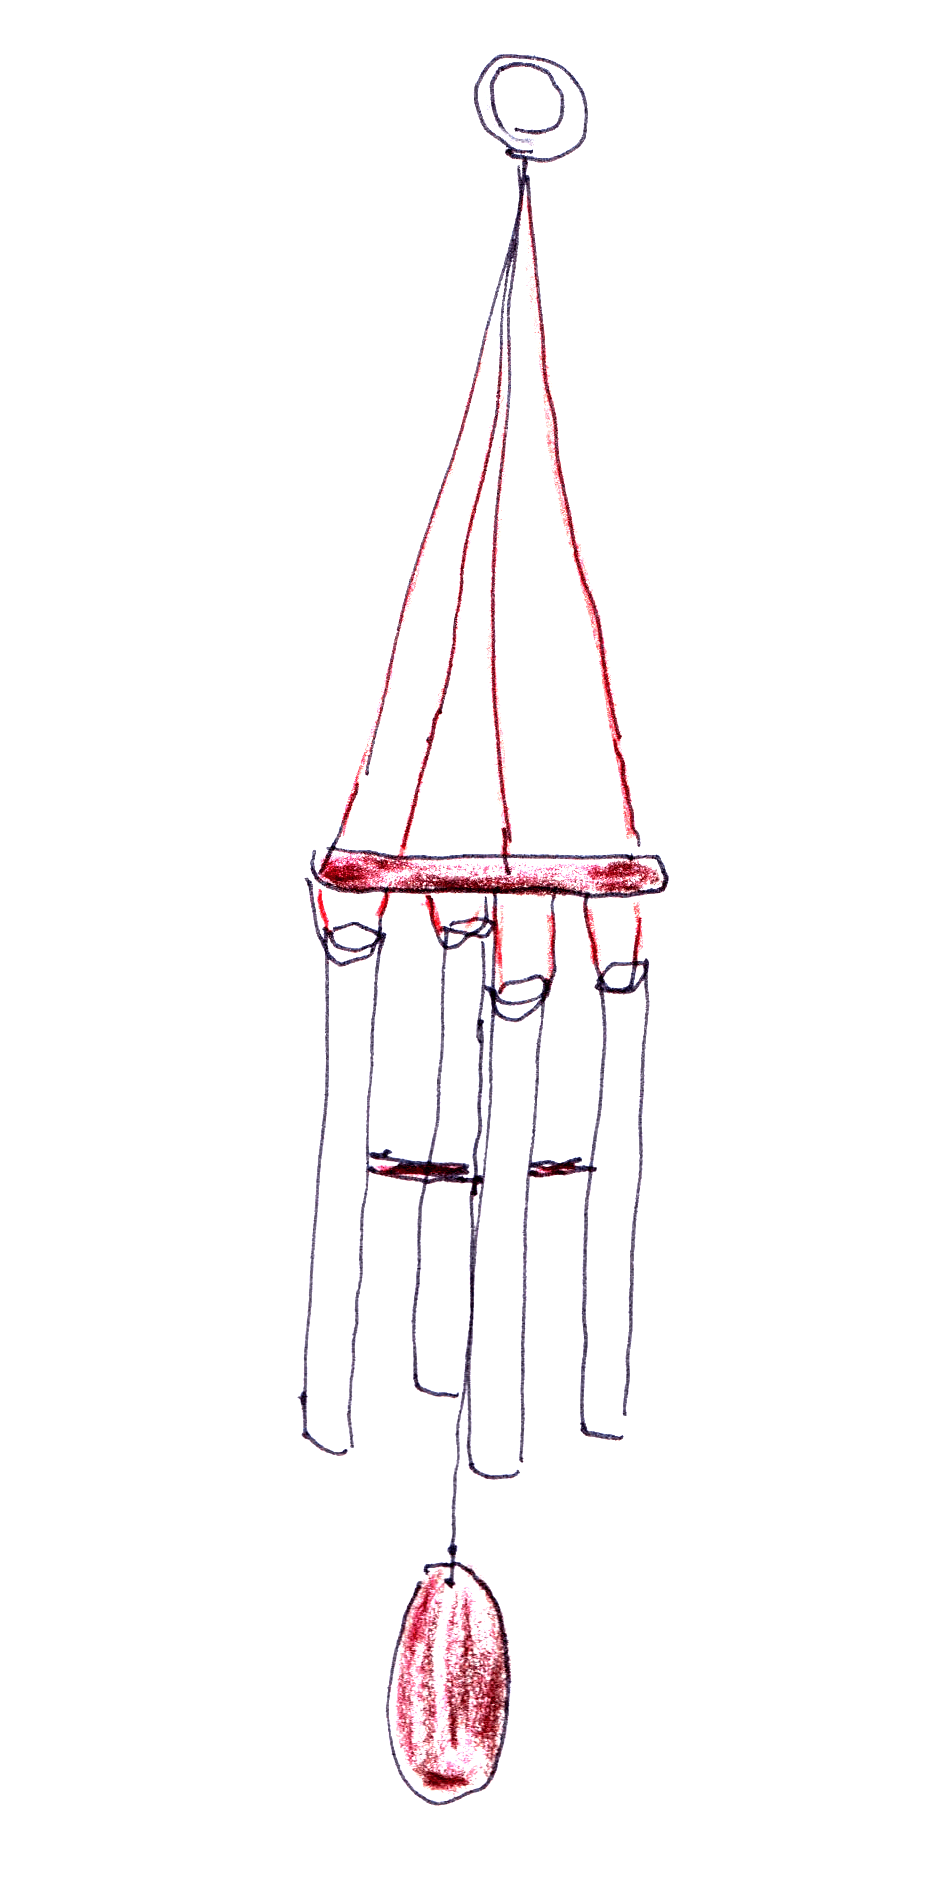 drawing of wind chimes